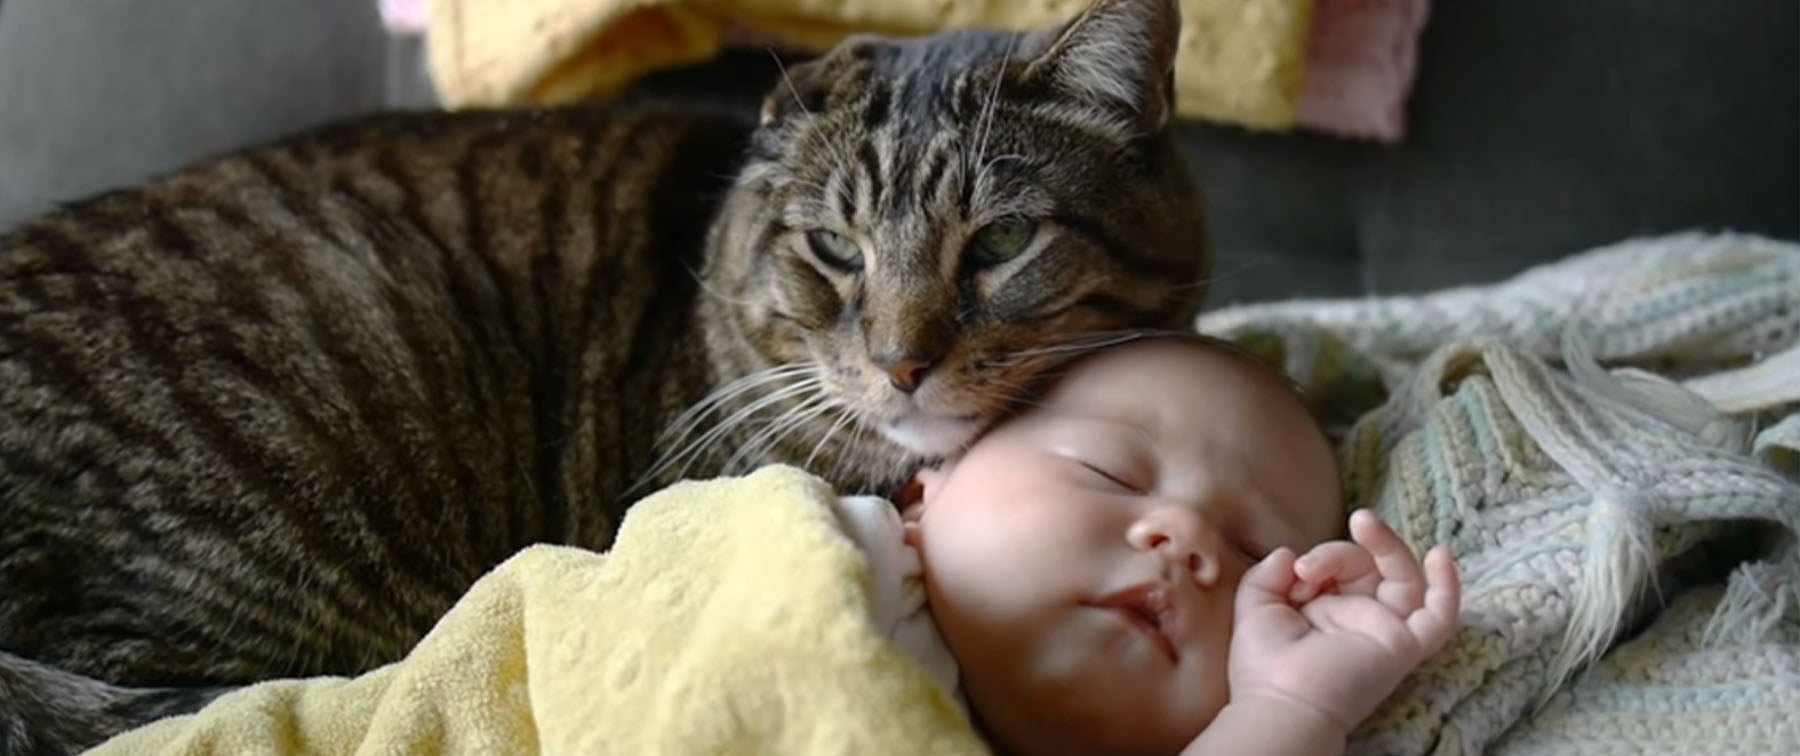 Cats may be preventing Asthma in children!